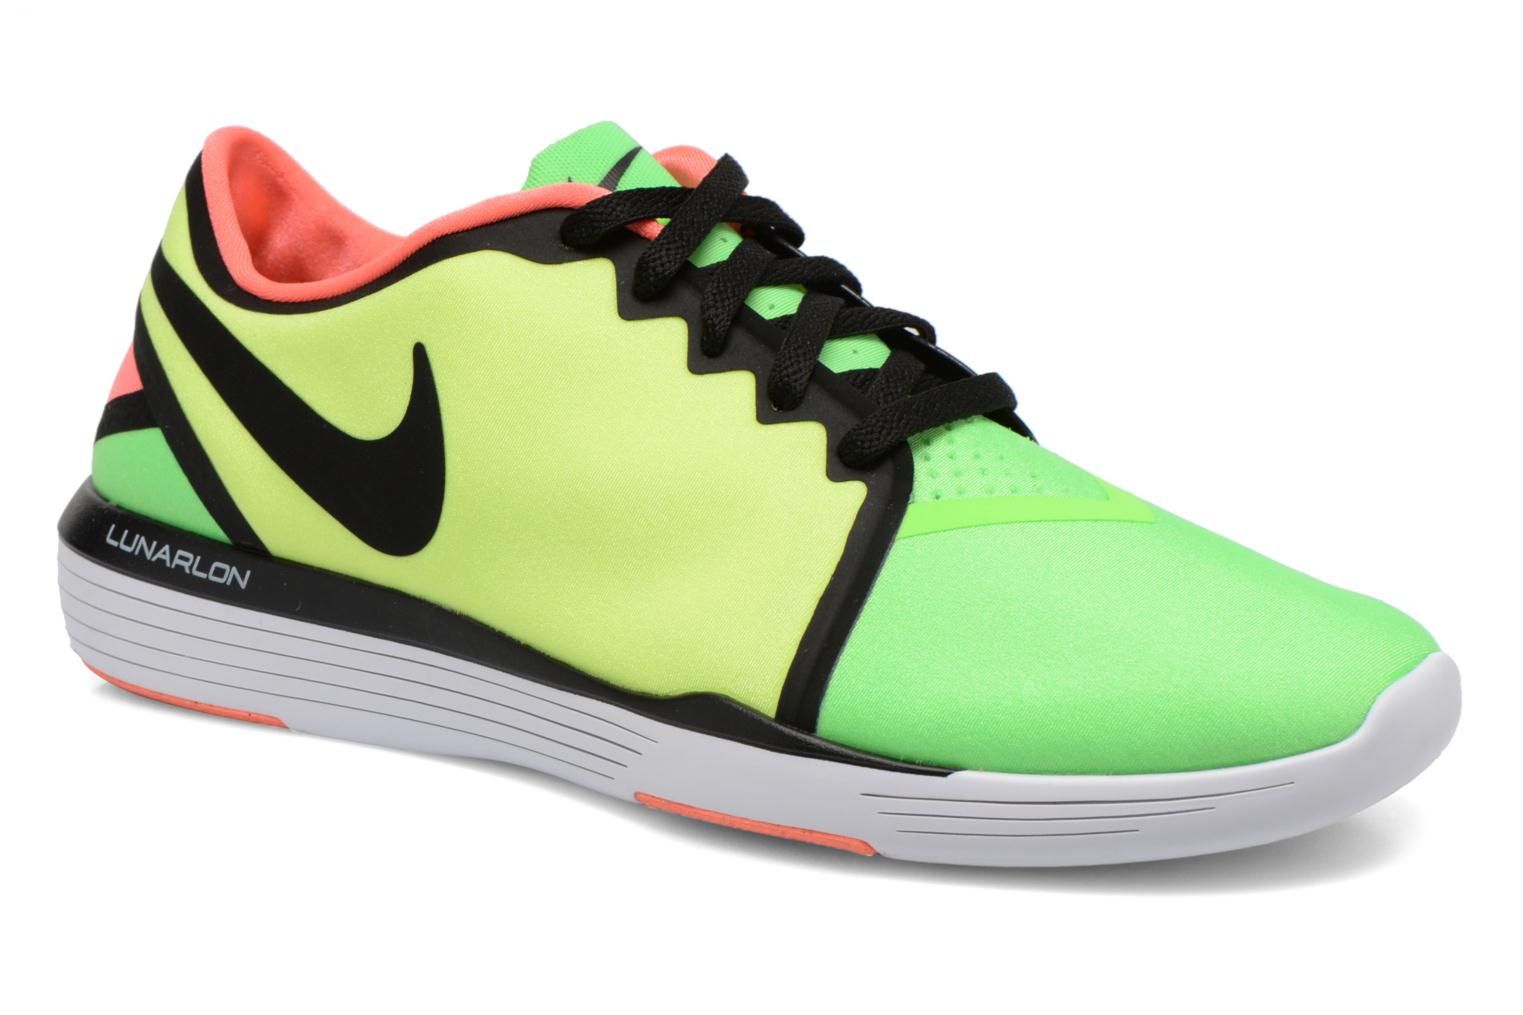 Wmns Nike Lunar Sculpt by Nike Multicolor